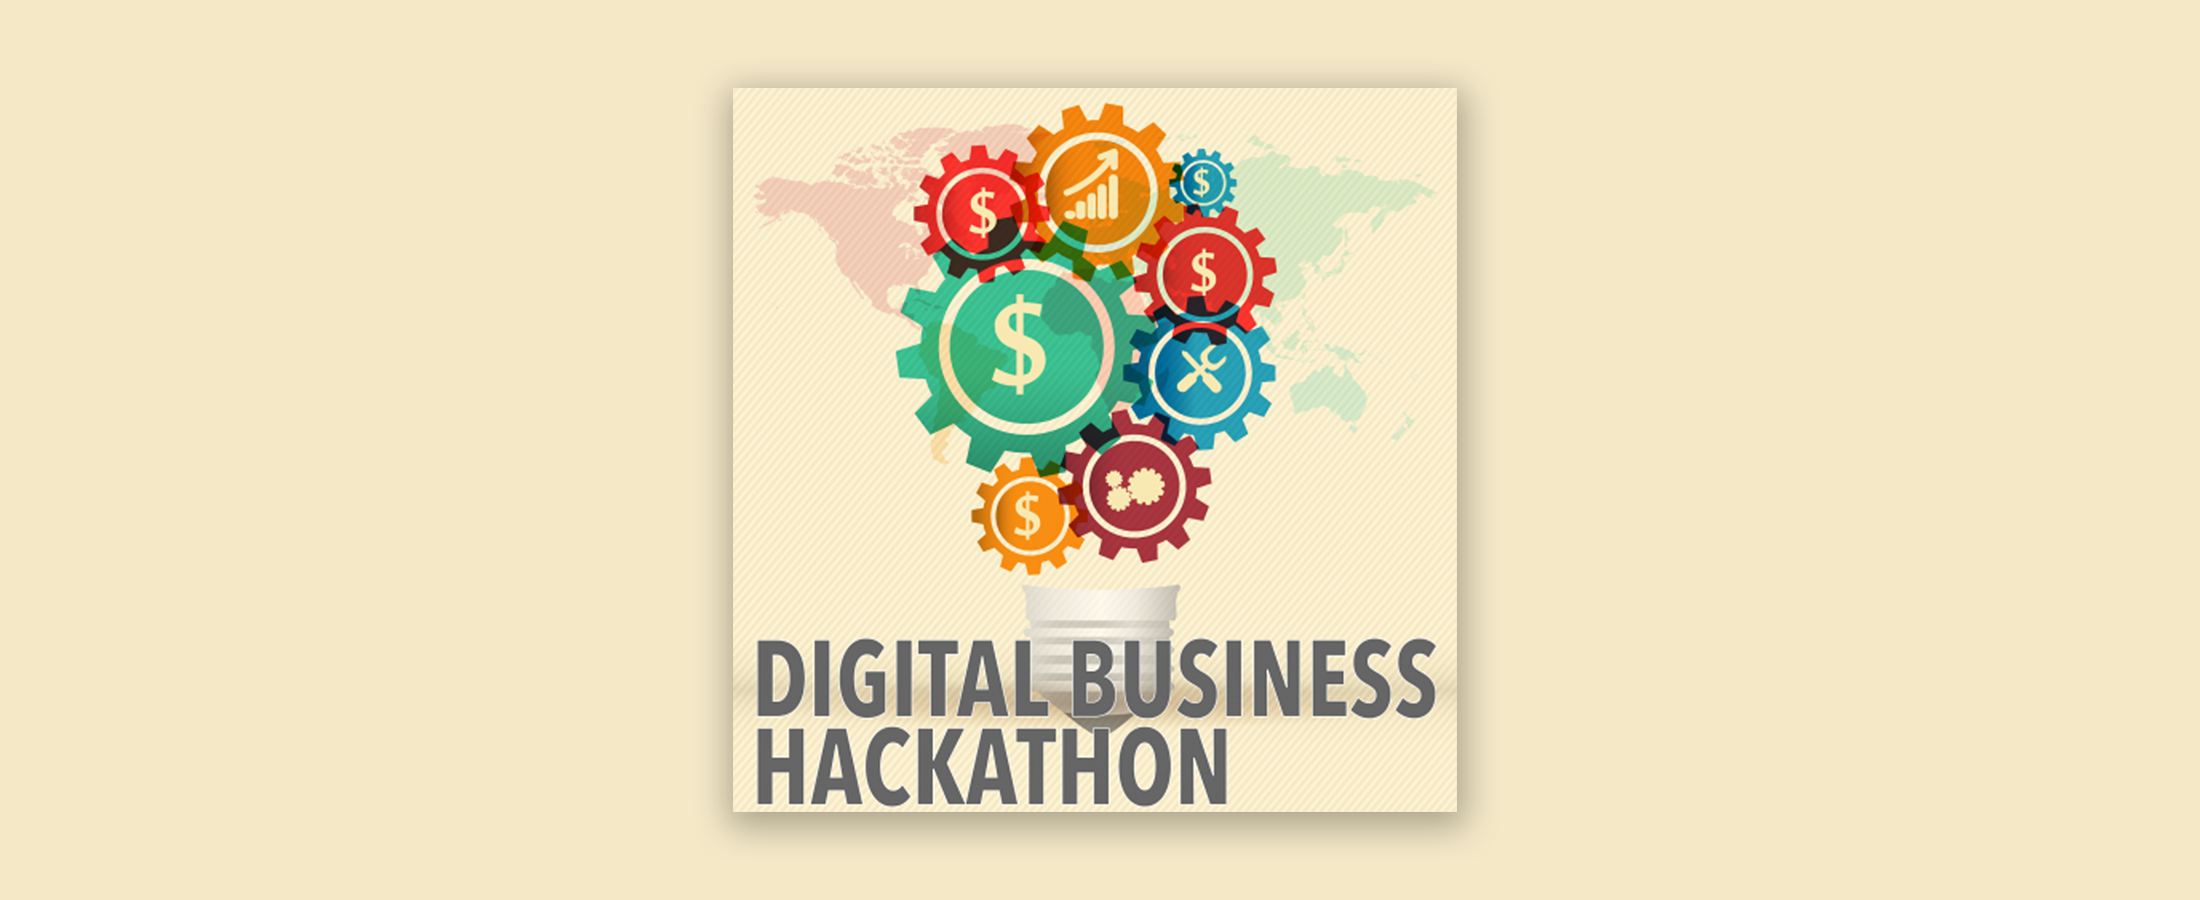 Illustration Digital Business Hackathon